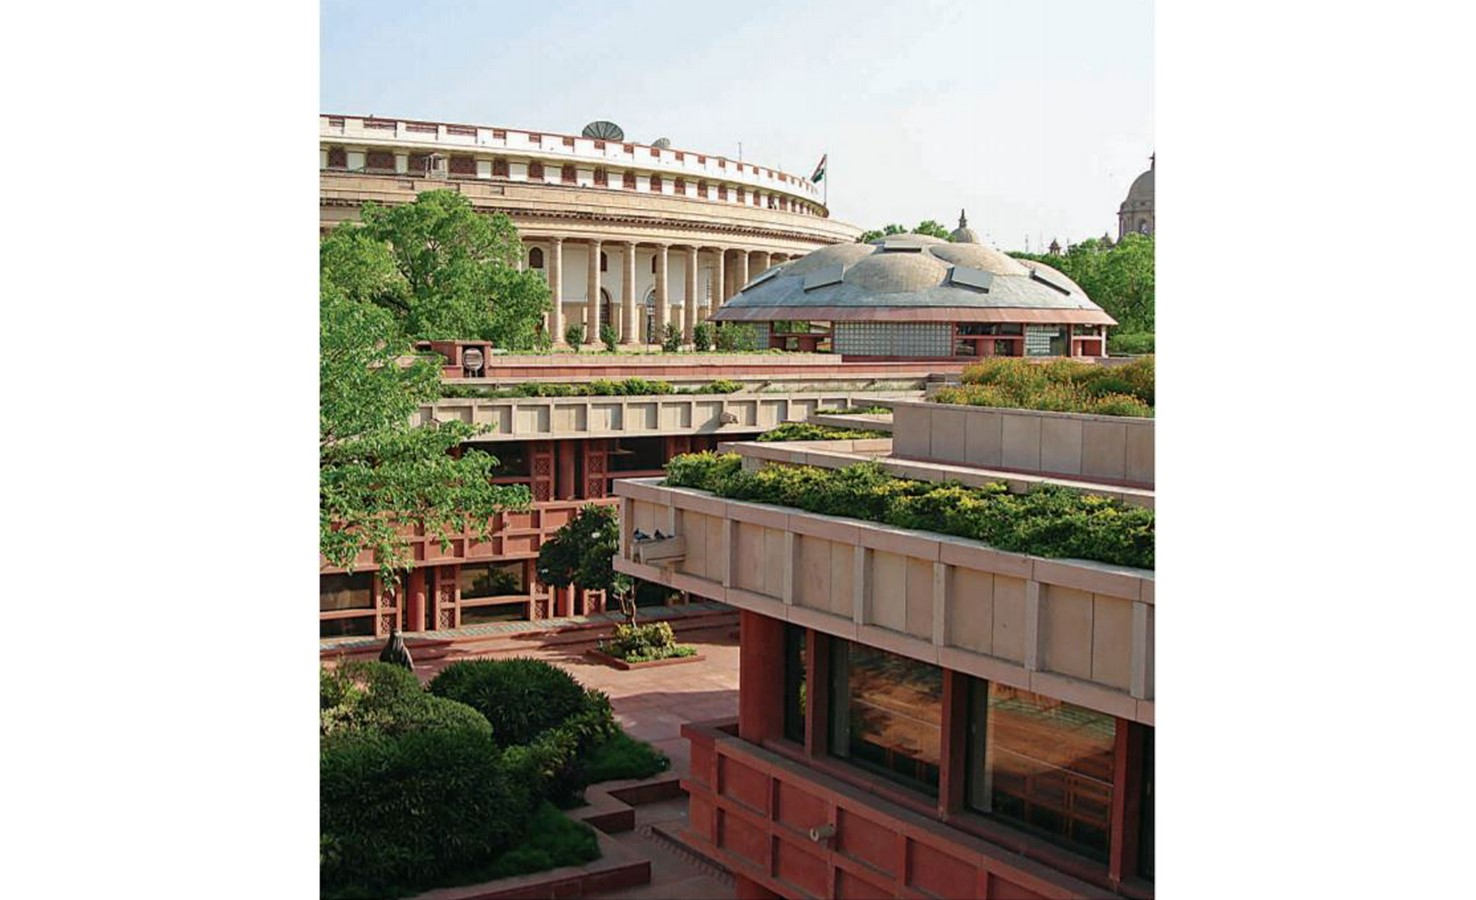 Parliament Library Building by Raj Rewal: Enlightenment translated into architecture - Sheet3